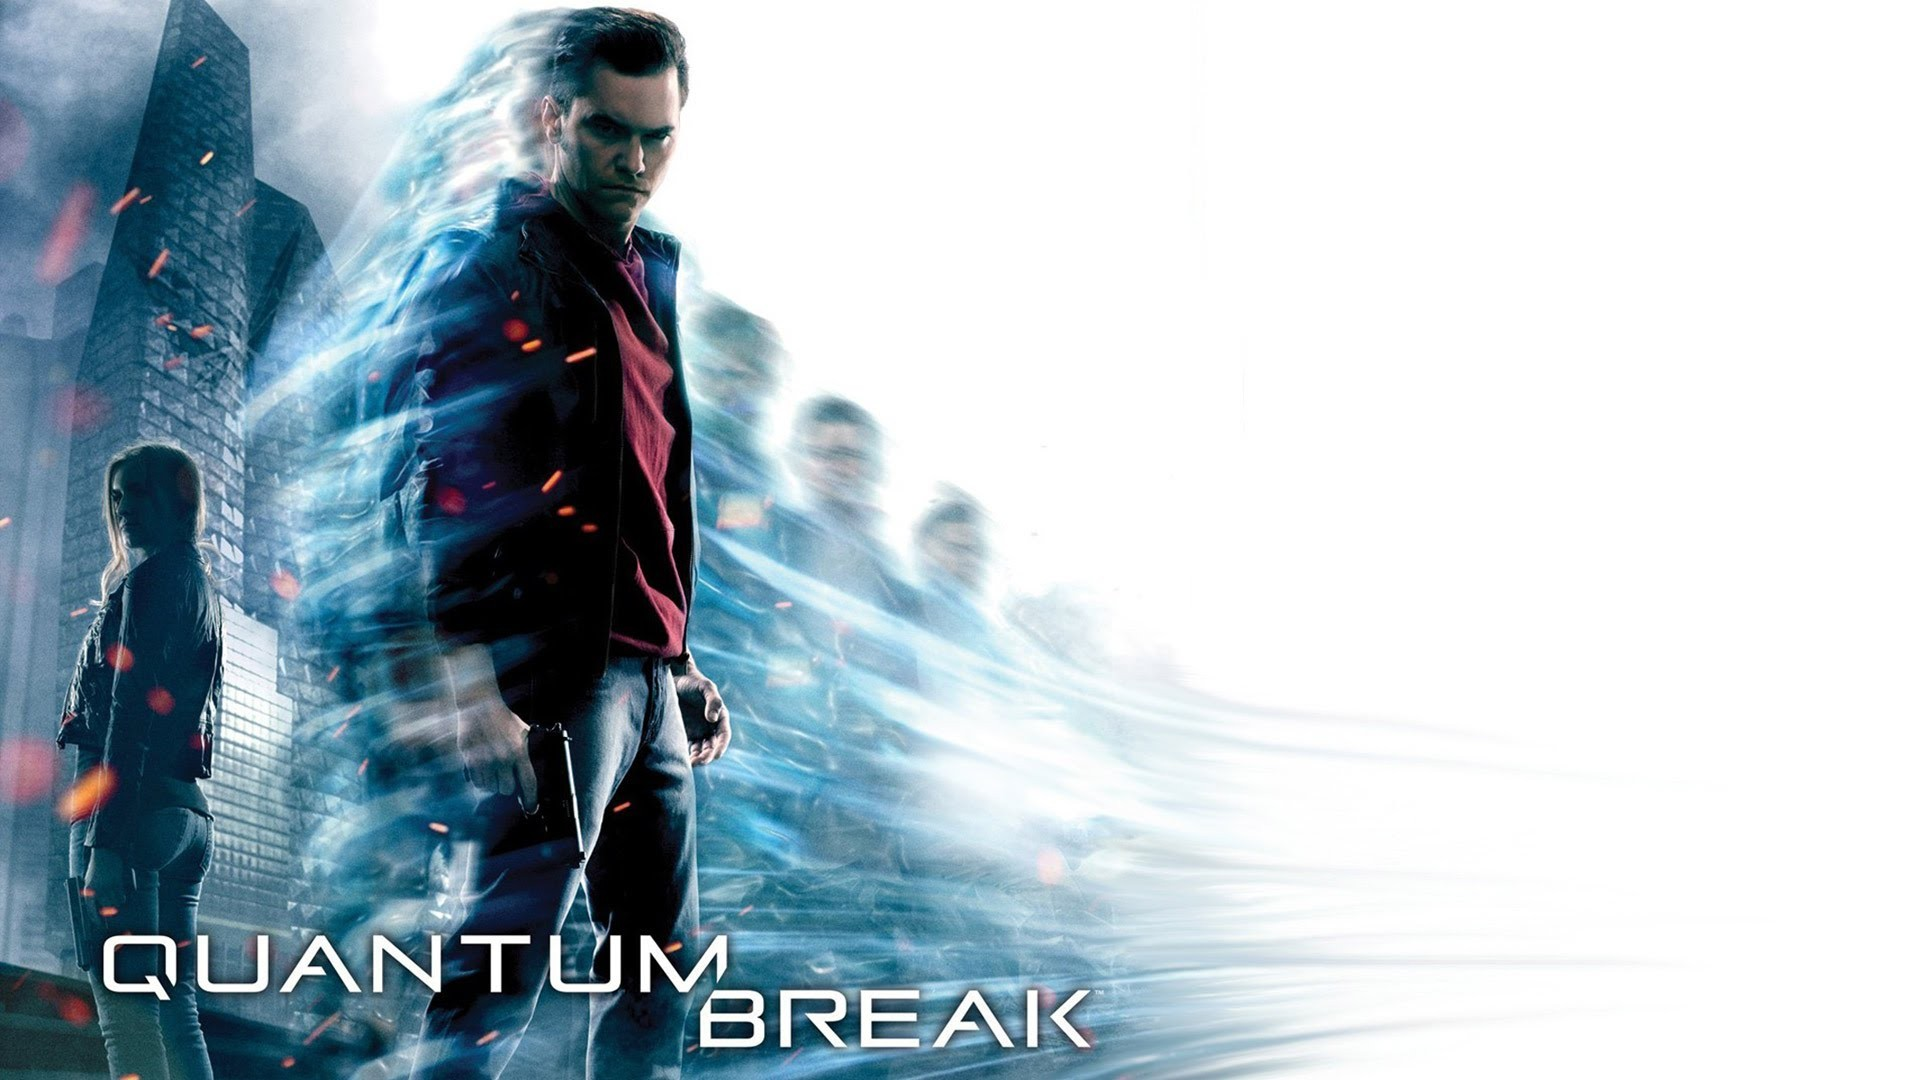 background - Quantum Break má na PC problémy s fps